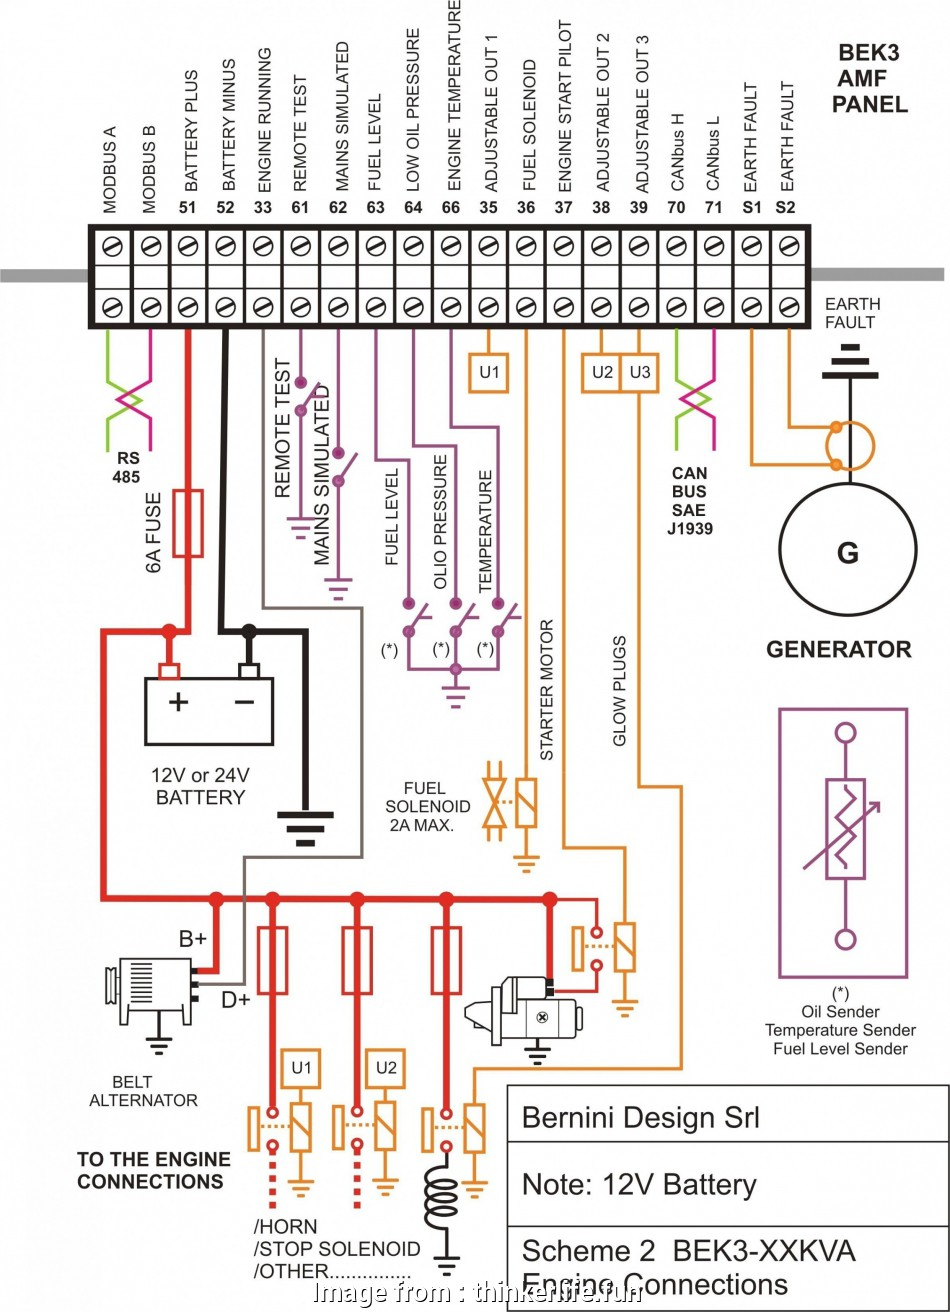 Basic Wiring Home Network - Wiring Diagrams on